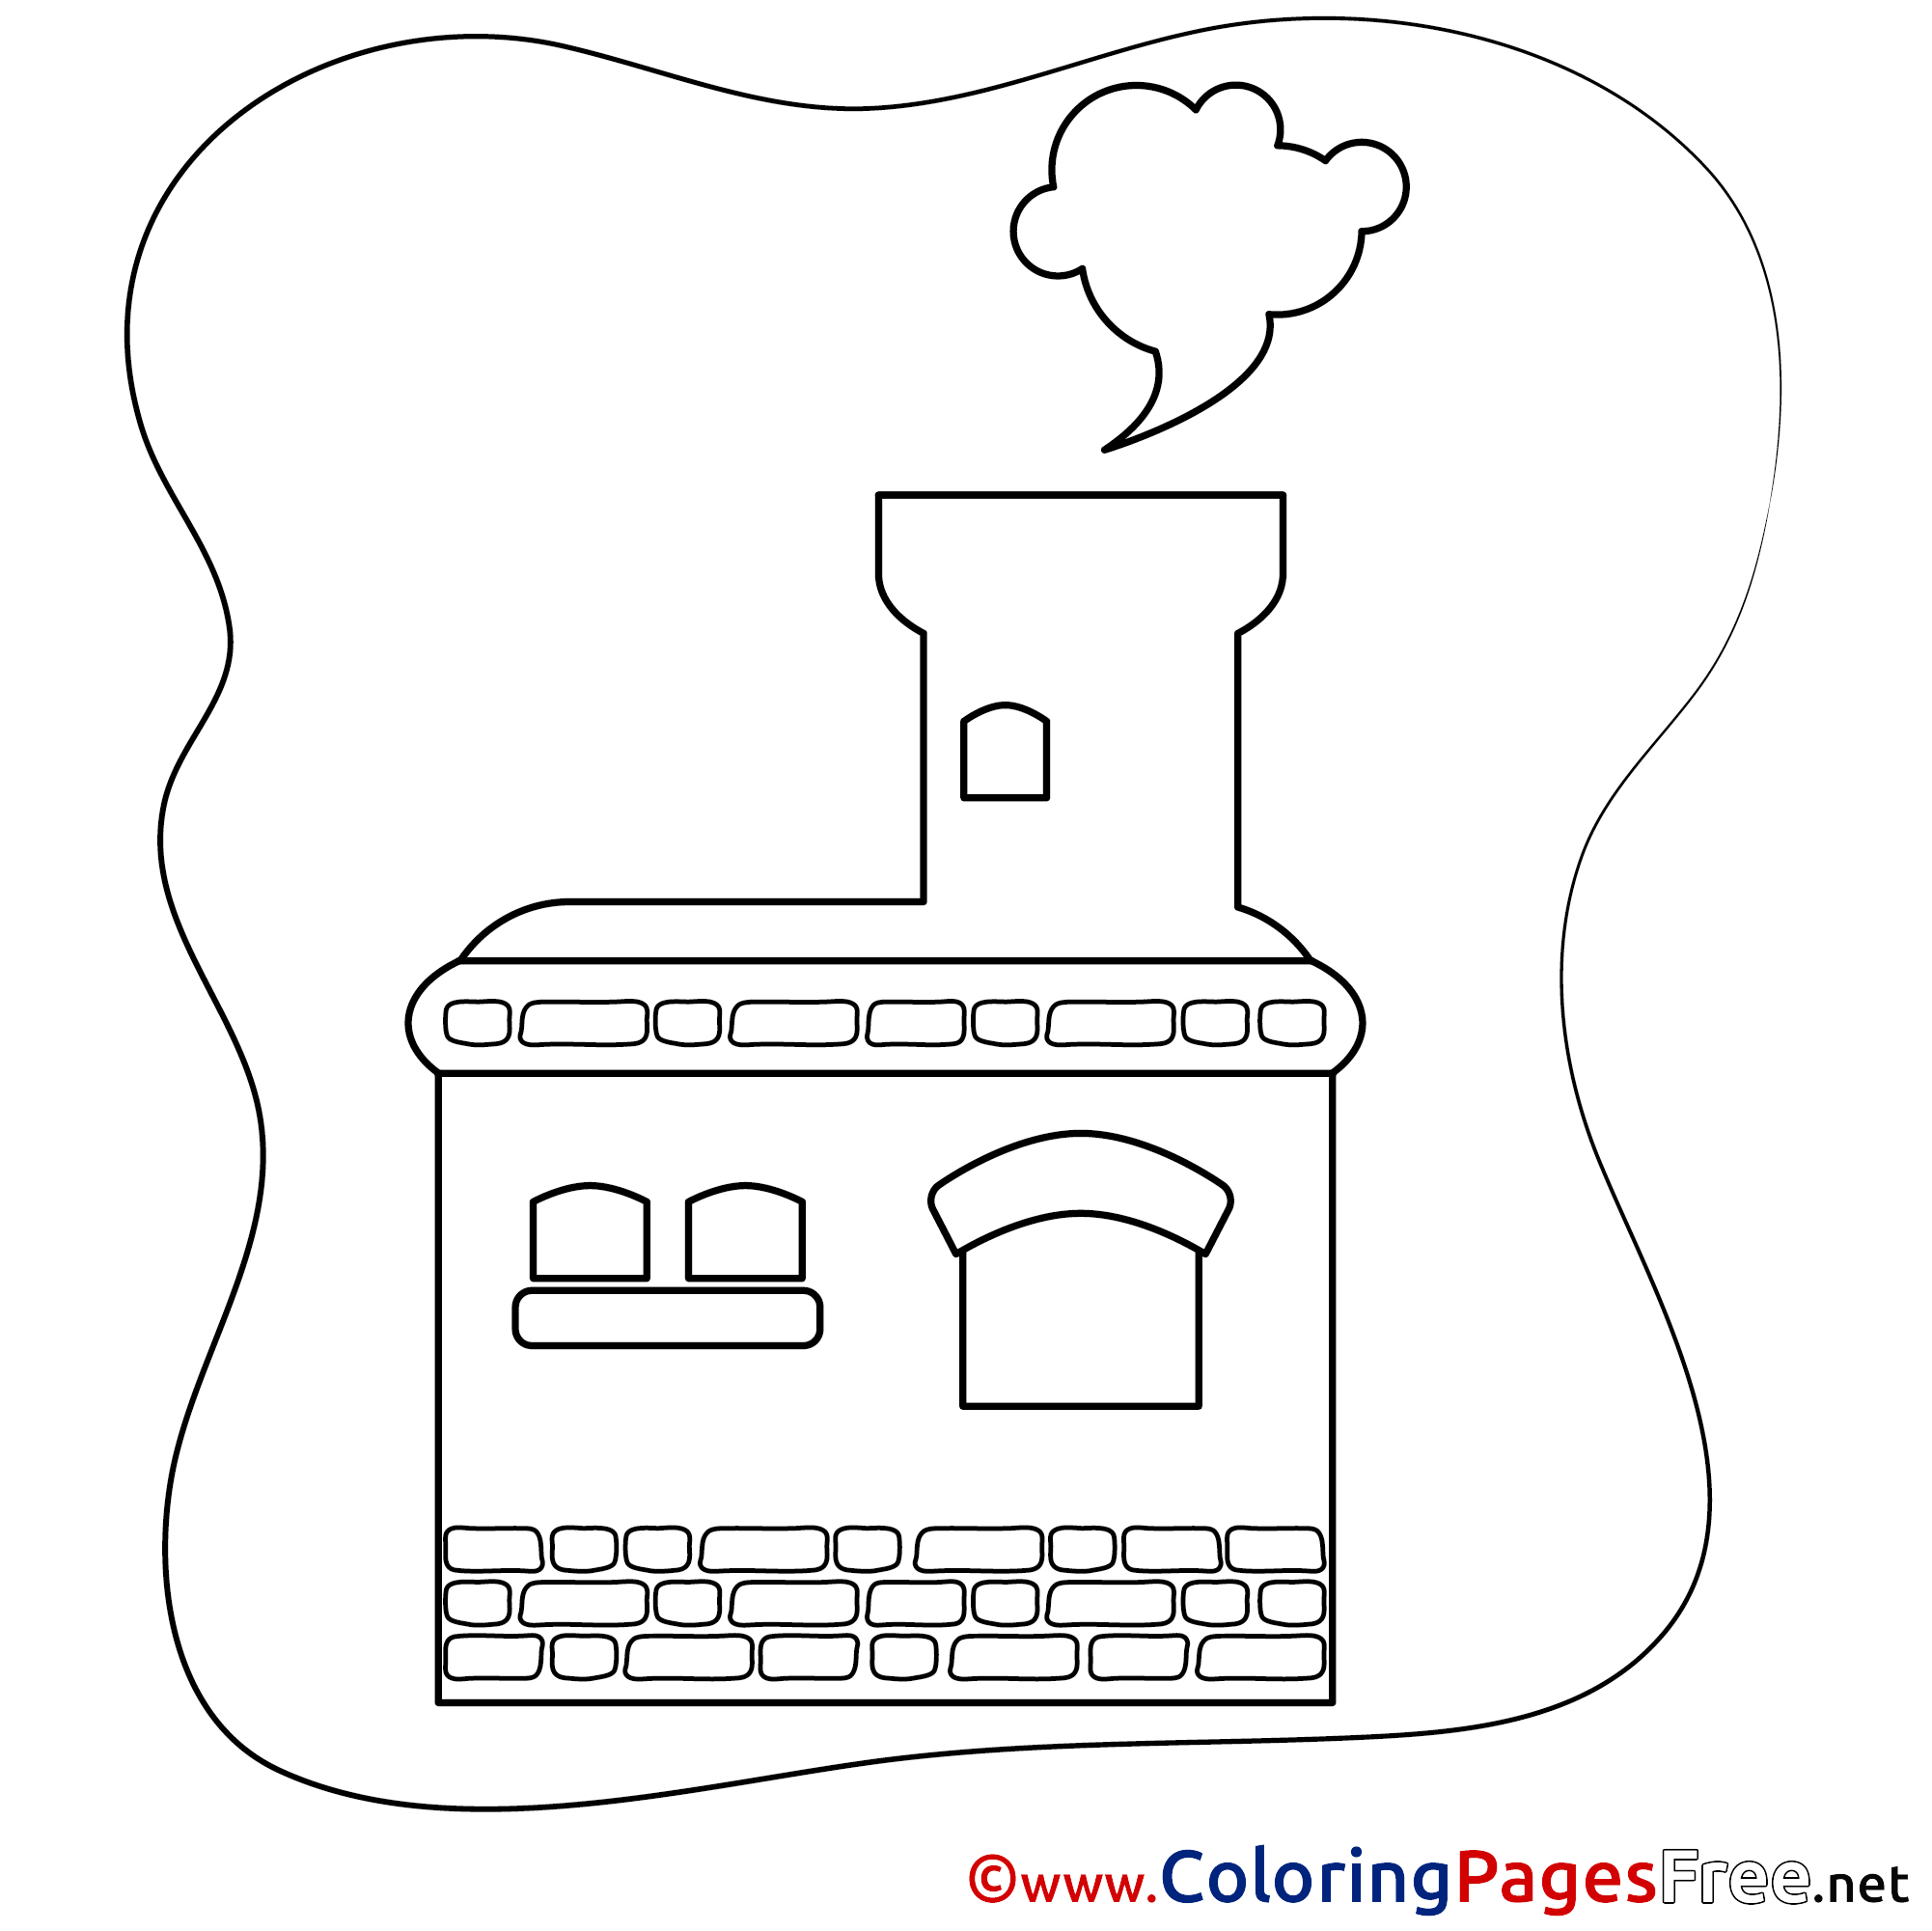 Stove coloring page